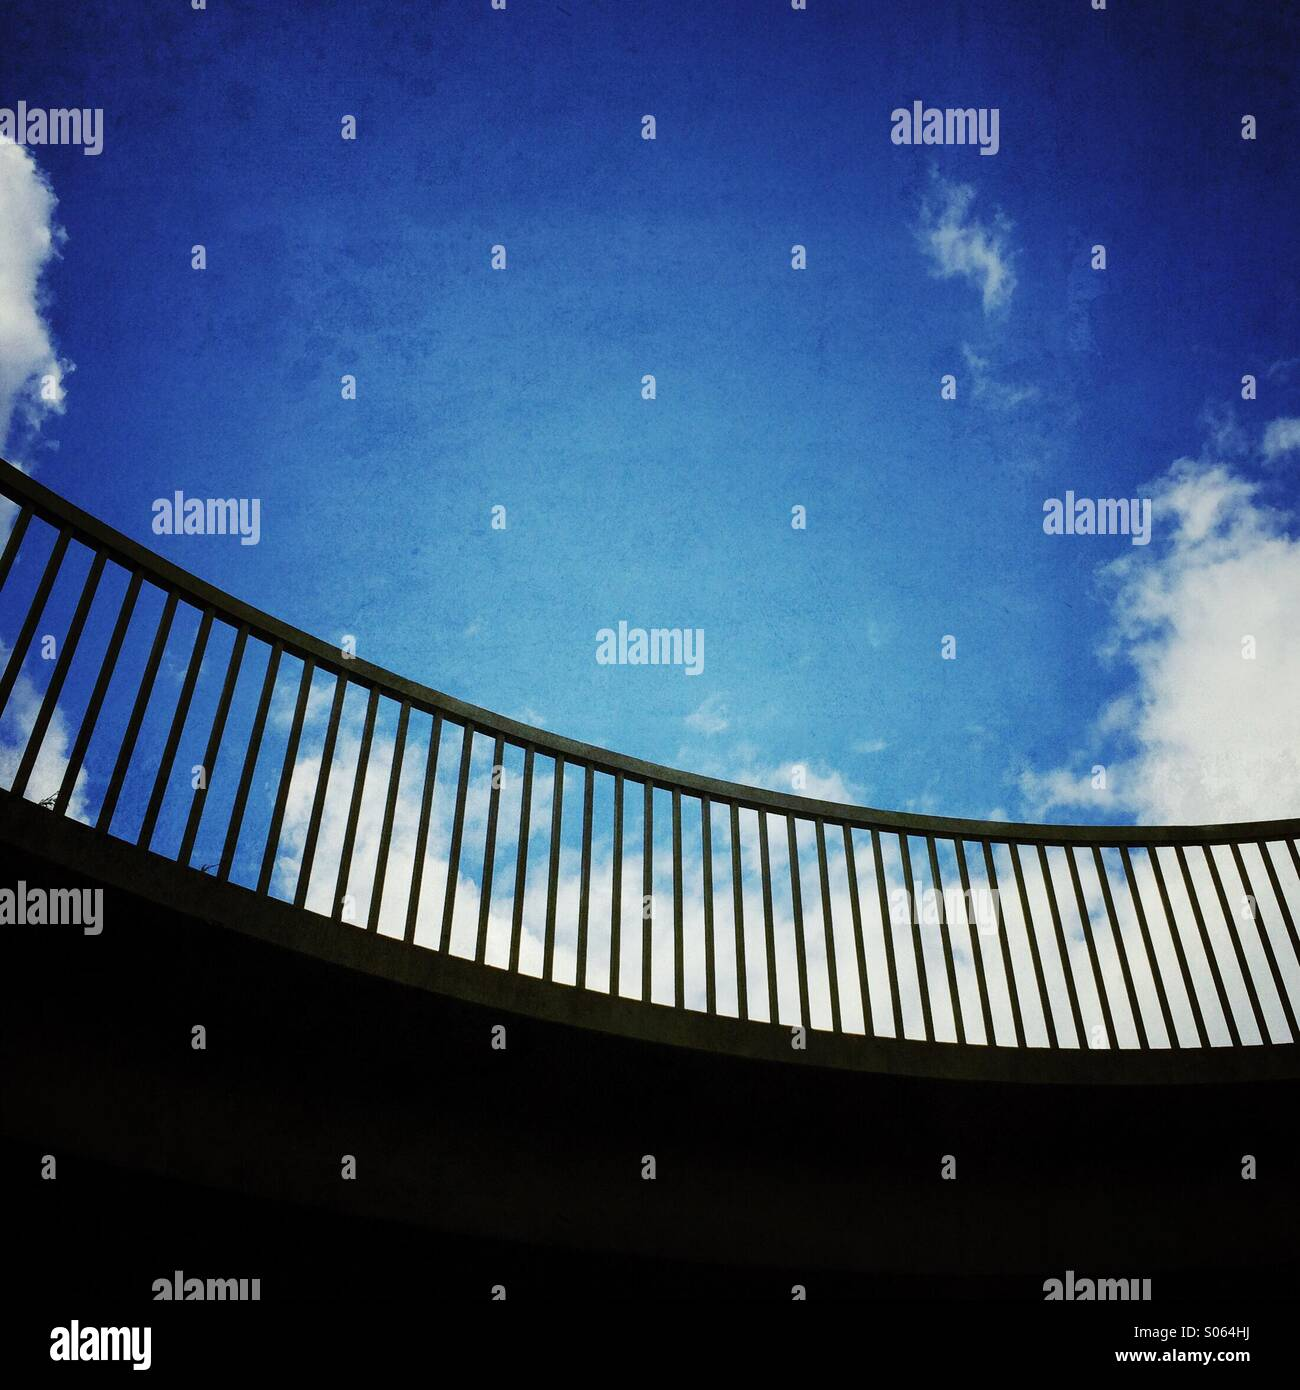 Curved railings road bridge - Stock Image